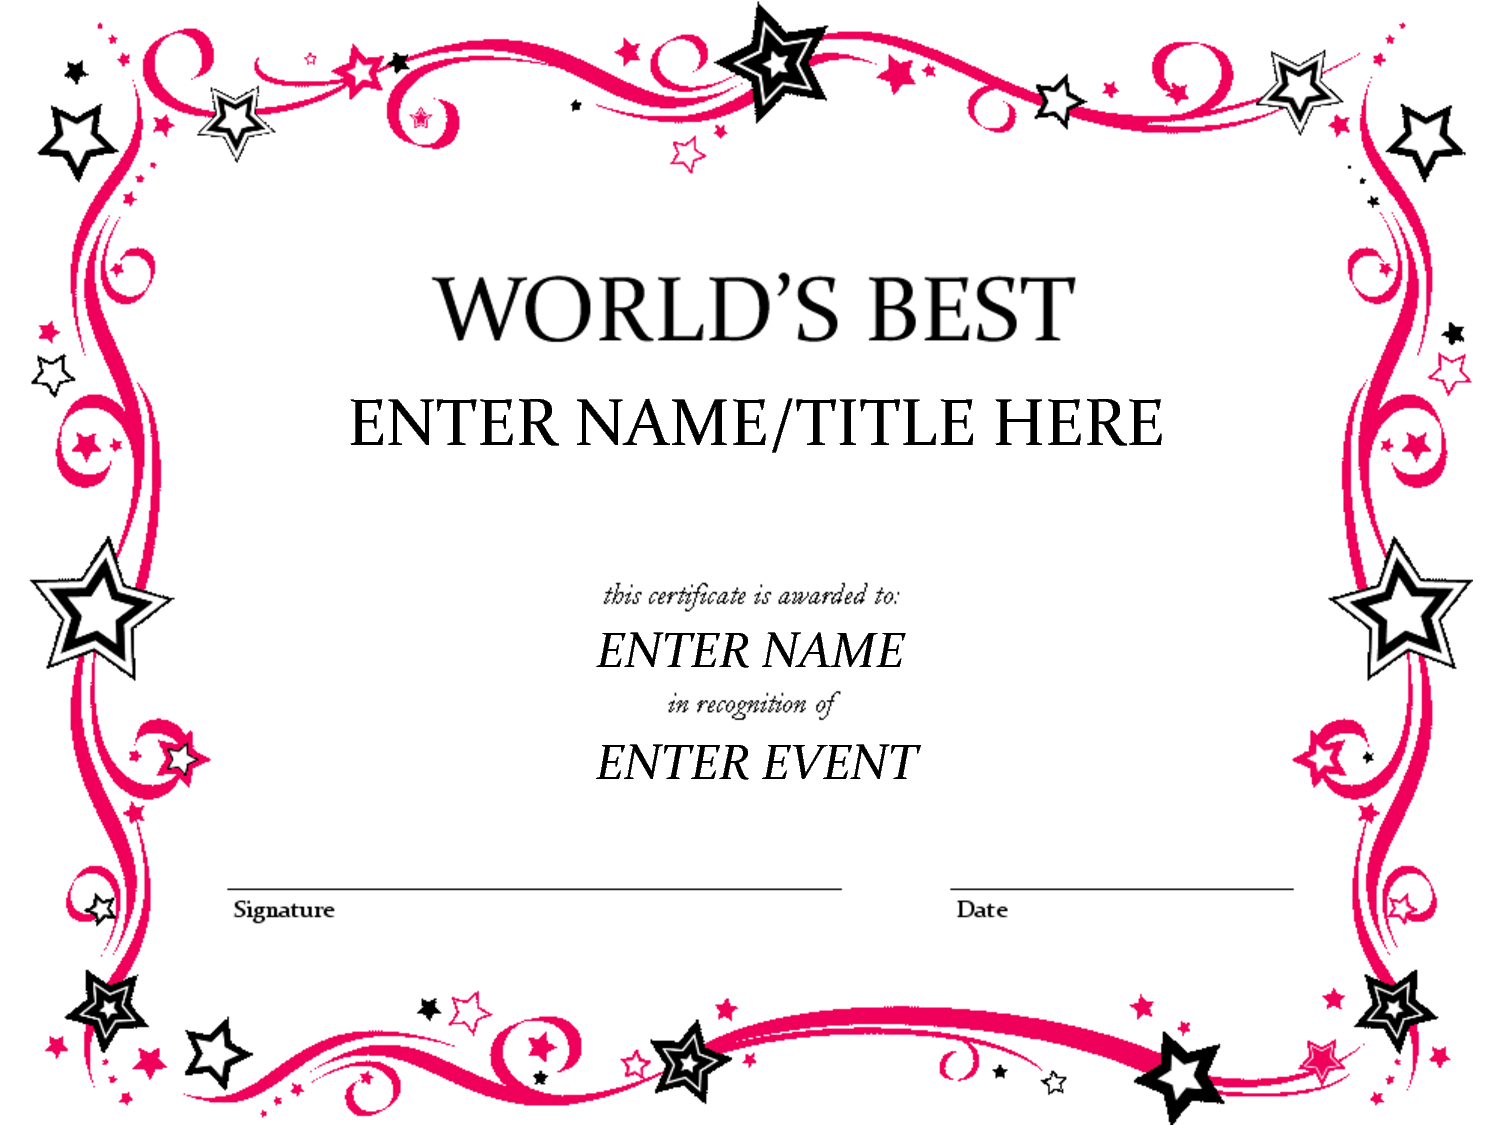 Free funny award certificates templates worlds best custom award free funny award certificates templates worlds best custom award certificate template yadclub